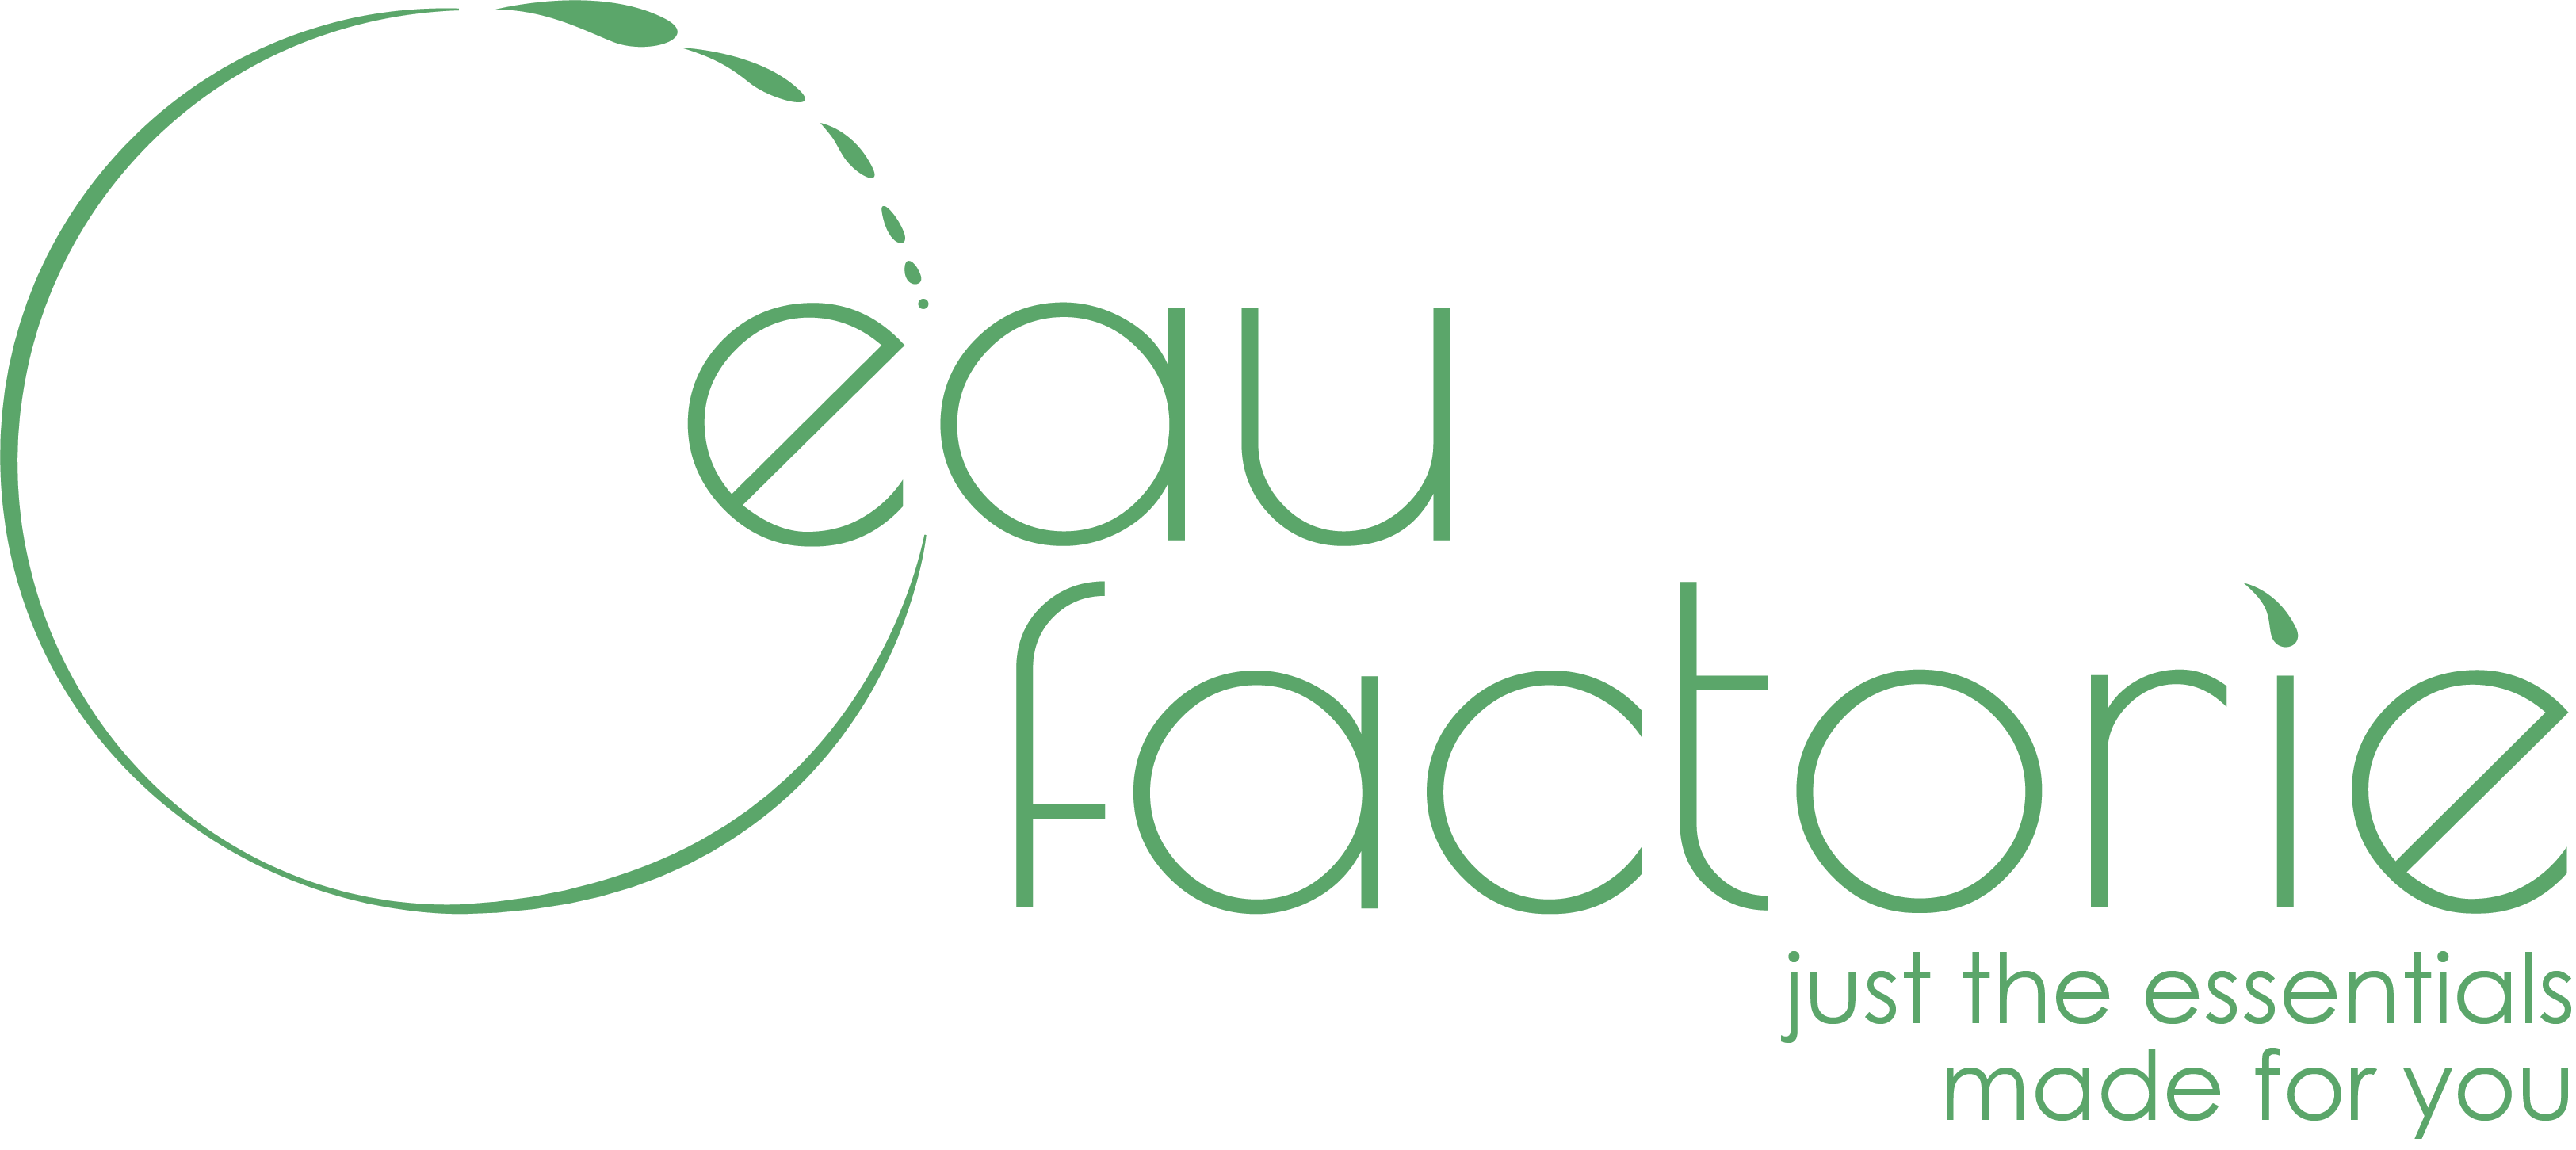 Bairen_Jacob_eau_factorie_logo